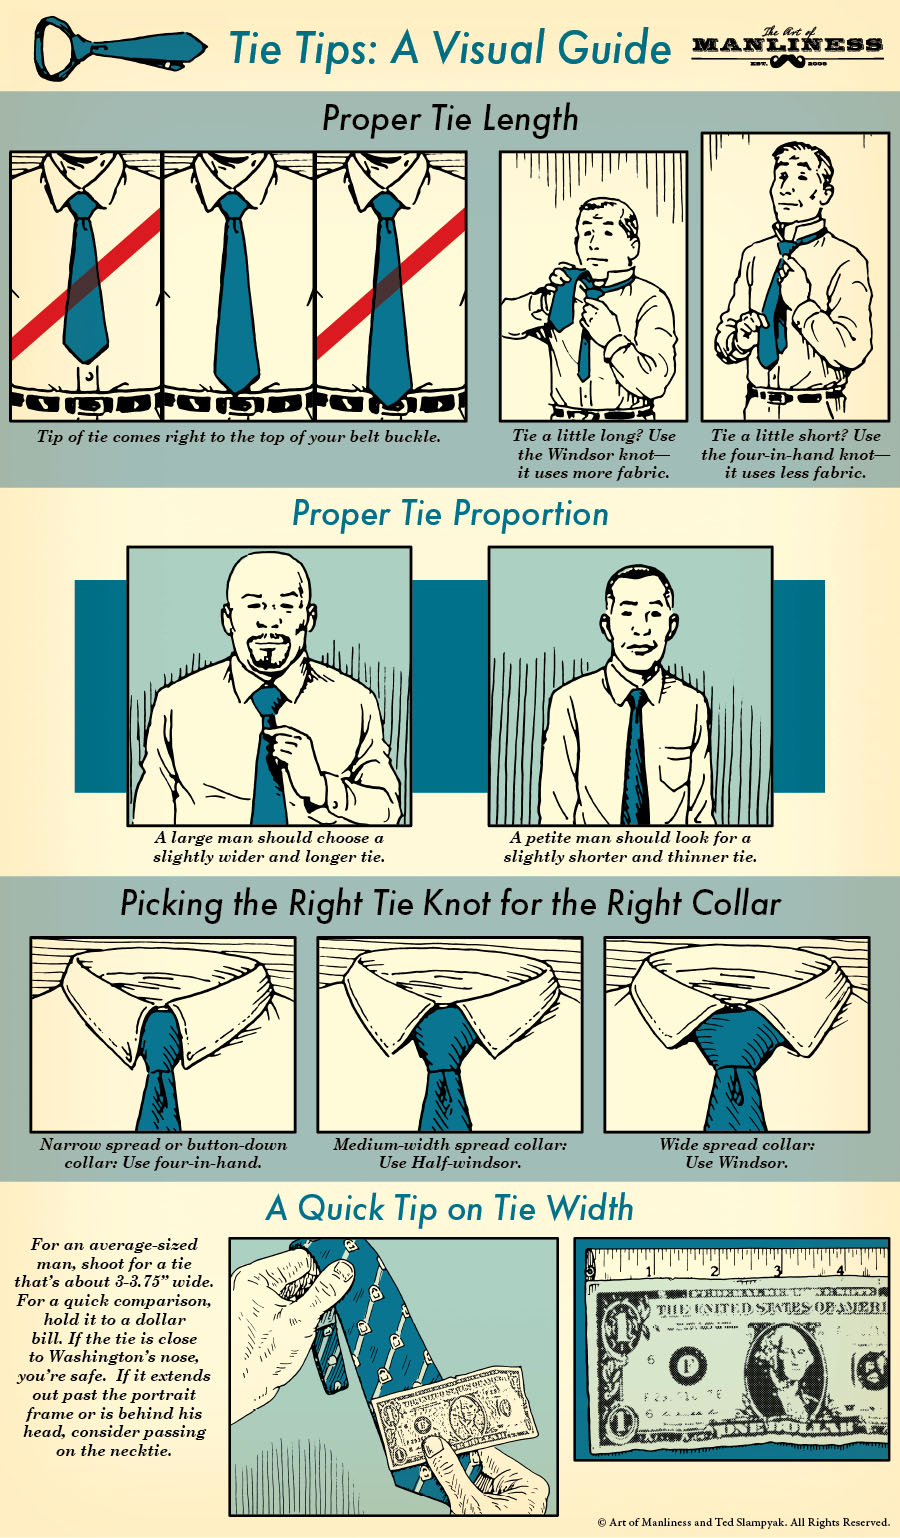 """Tie Tips: A Visual Guide Proper Tie Length. Tip of tie comes right to the top of your belt buckle. Tie a little long? Use the Windsor Knot – it uses more fabric. Tie a little short? Use the four-in-hand knot – it uses less fabric. Proper Tie Proportion. A large man should choose a slightly wider and longer tie. A petite man should look for a slightly shorter and thinner tie. Picking the Right Tie Know for the Right Collar. Narrow spread or button collar – use four-in-hand. Medium-width spread collar – use Hald-windsor. Wide spread collar – use Windsor. A Quick Tip on Tie Width. For an average-sized man, shoot for a tie that's about 3-3.75"""" wide. For a quick comparison, hold it to a dollar bill. If the tie is close to Washington's nose, you're safe. If it extends past the portrait frame or is behind his head, consider passing on the necktie."""